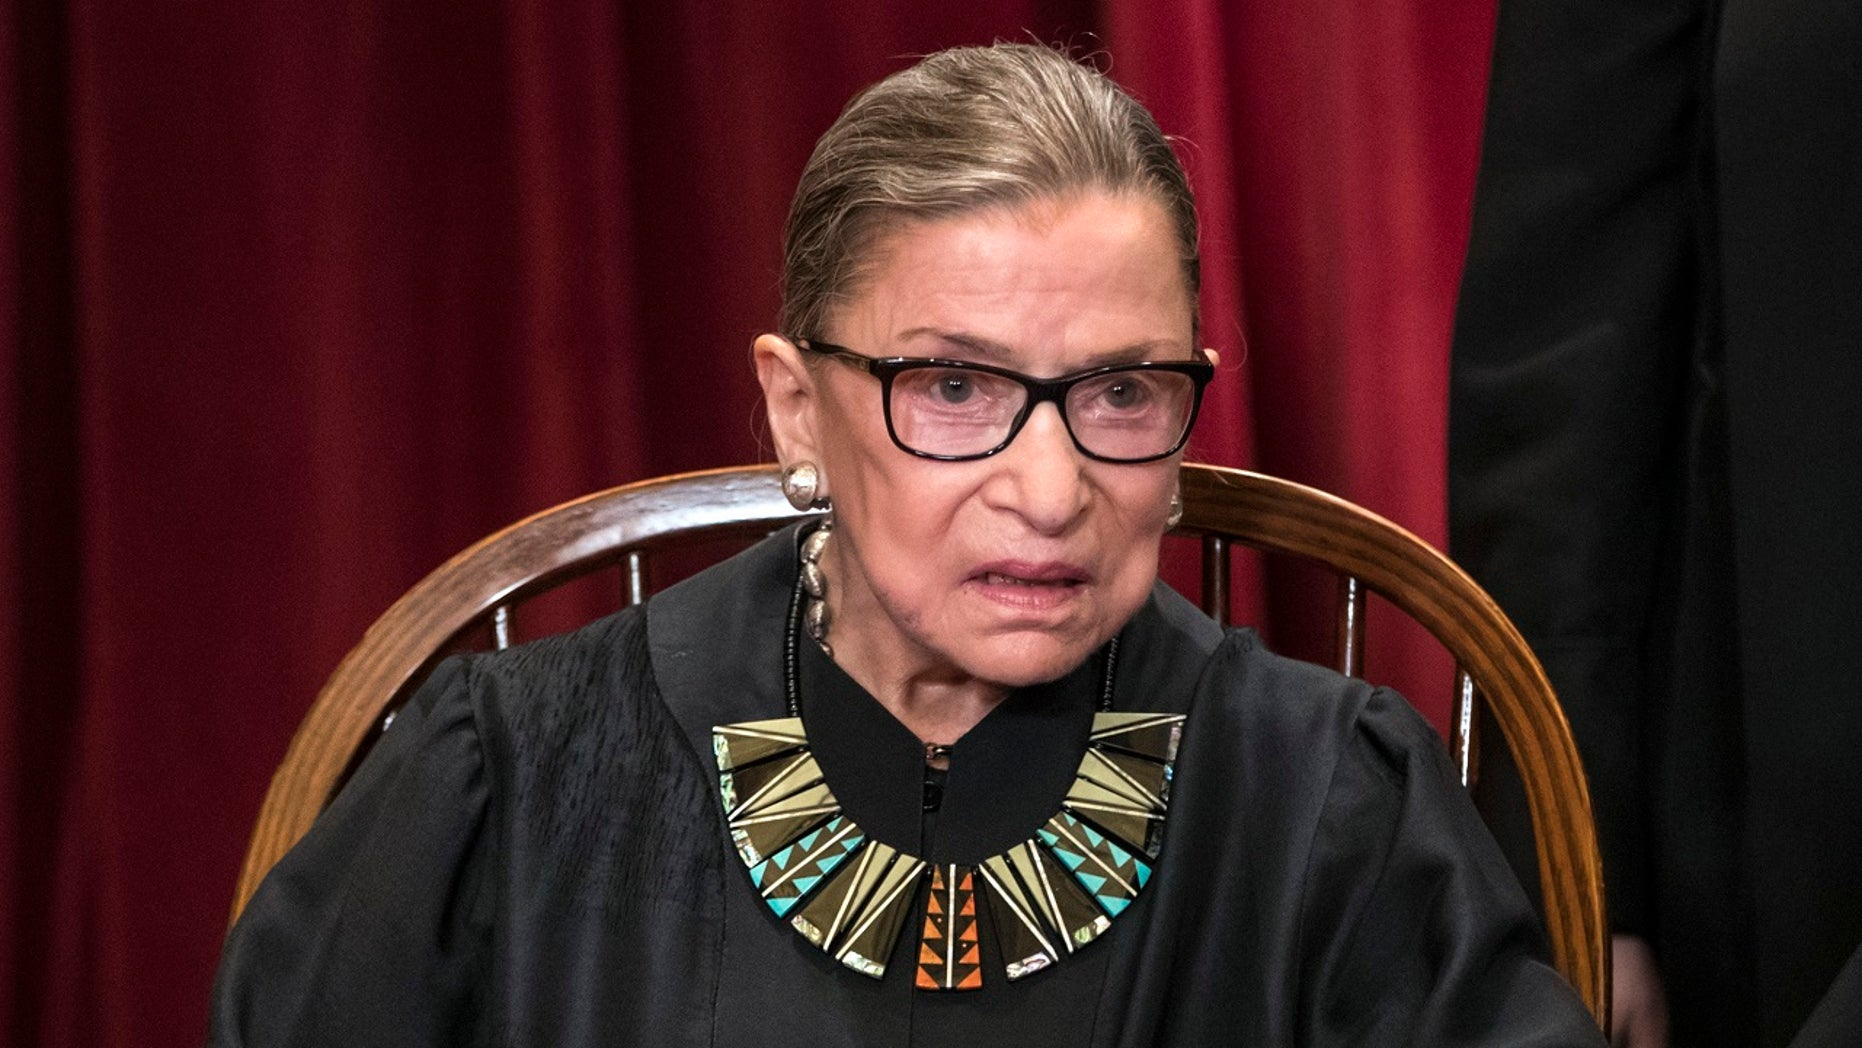 Associate Justice Ruth Bader Ginsburg of the U.S. Supreme Court poses for an official group portrait at the Supreme Court Building in Washington, June 1, 2017.